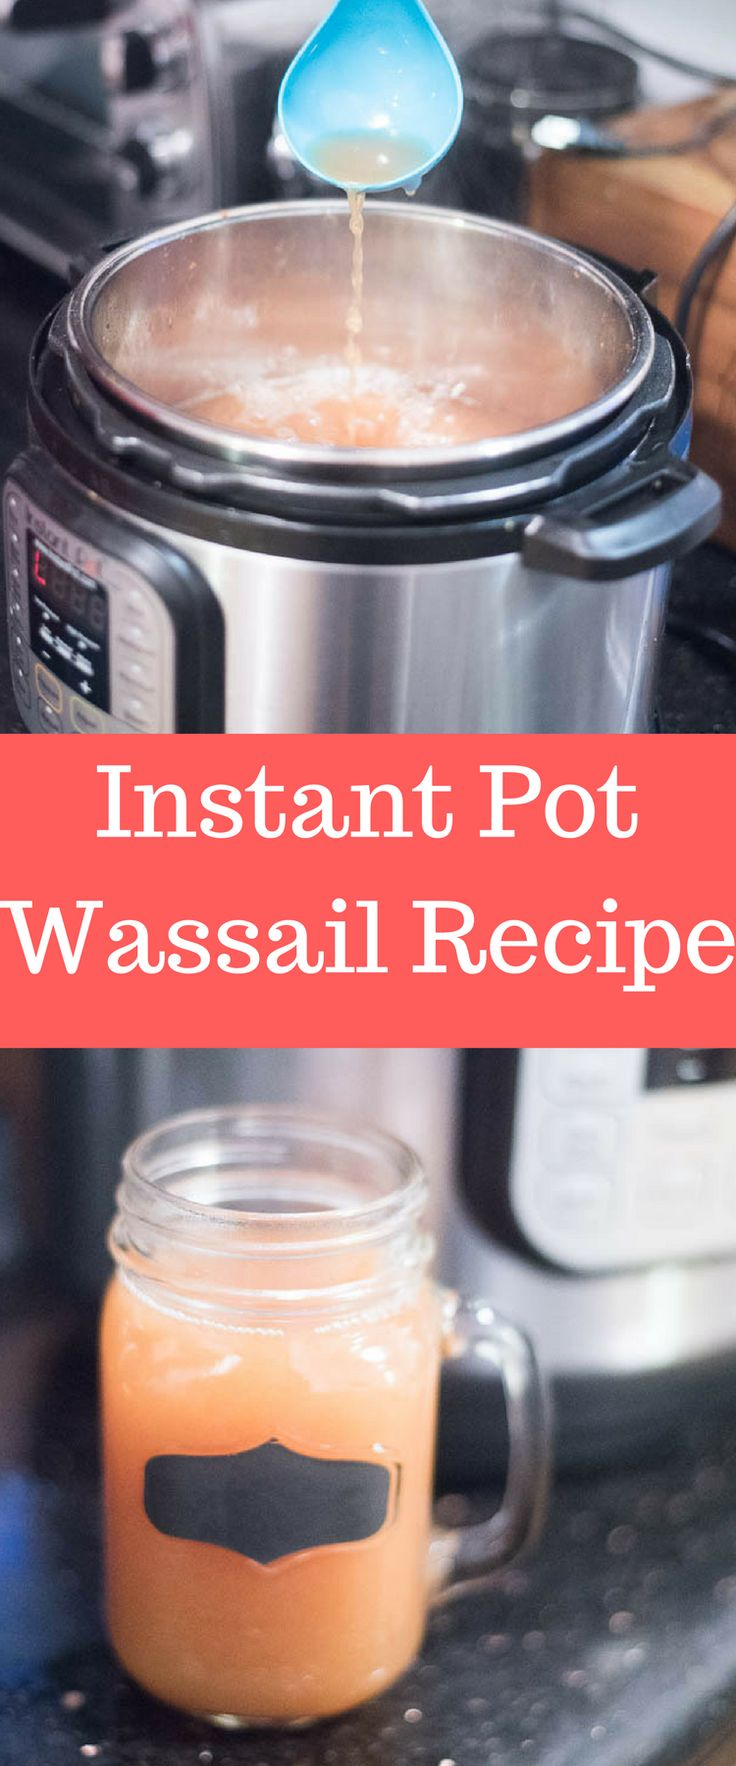 Instant Pot Recipe / Instant Pot Drink Recipe / INstant Pot Wassail / Instant Pot Apple Cider / Non-Alcoholic Drinks #instantpot #instantpotrecipes #pressurecooker  via @clarkscondensed